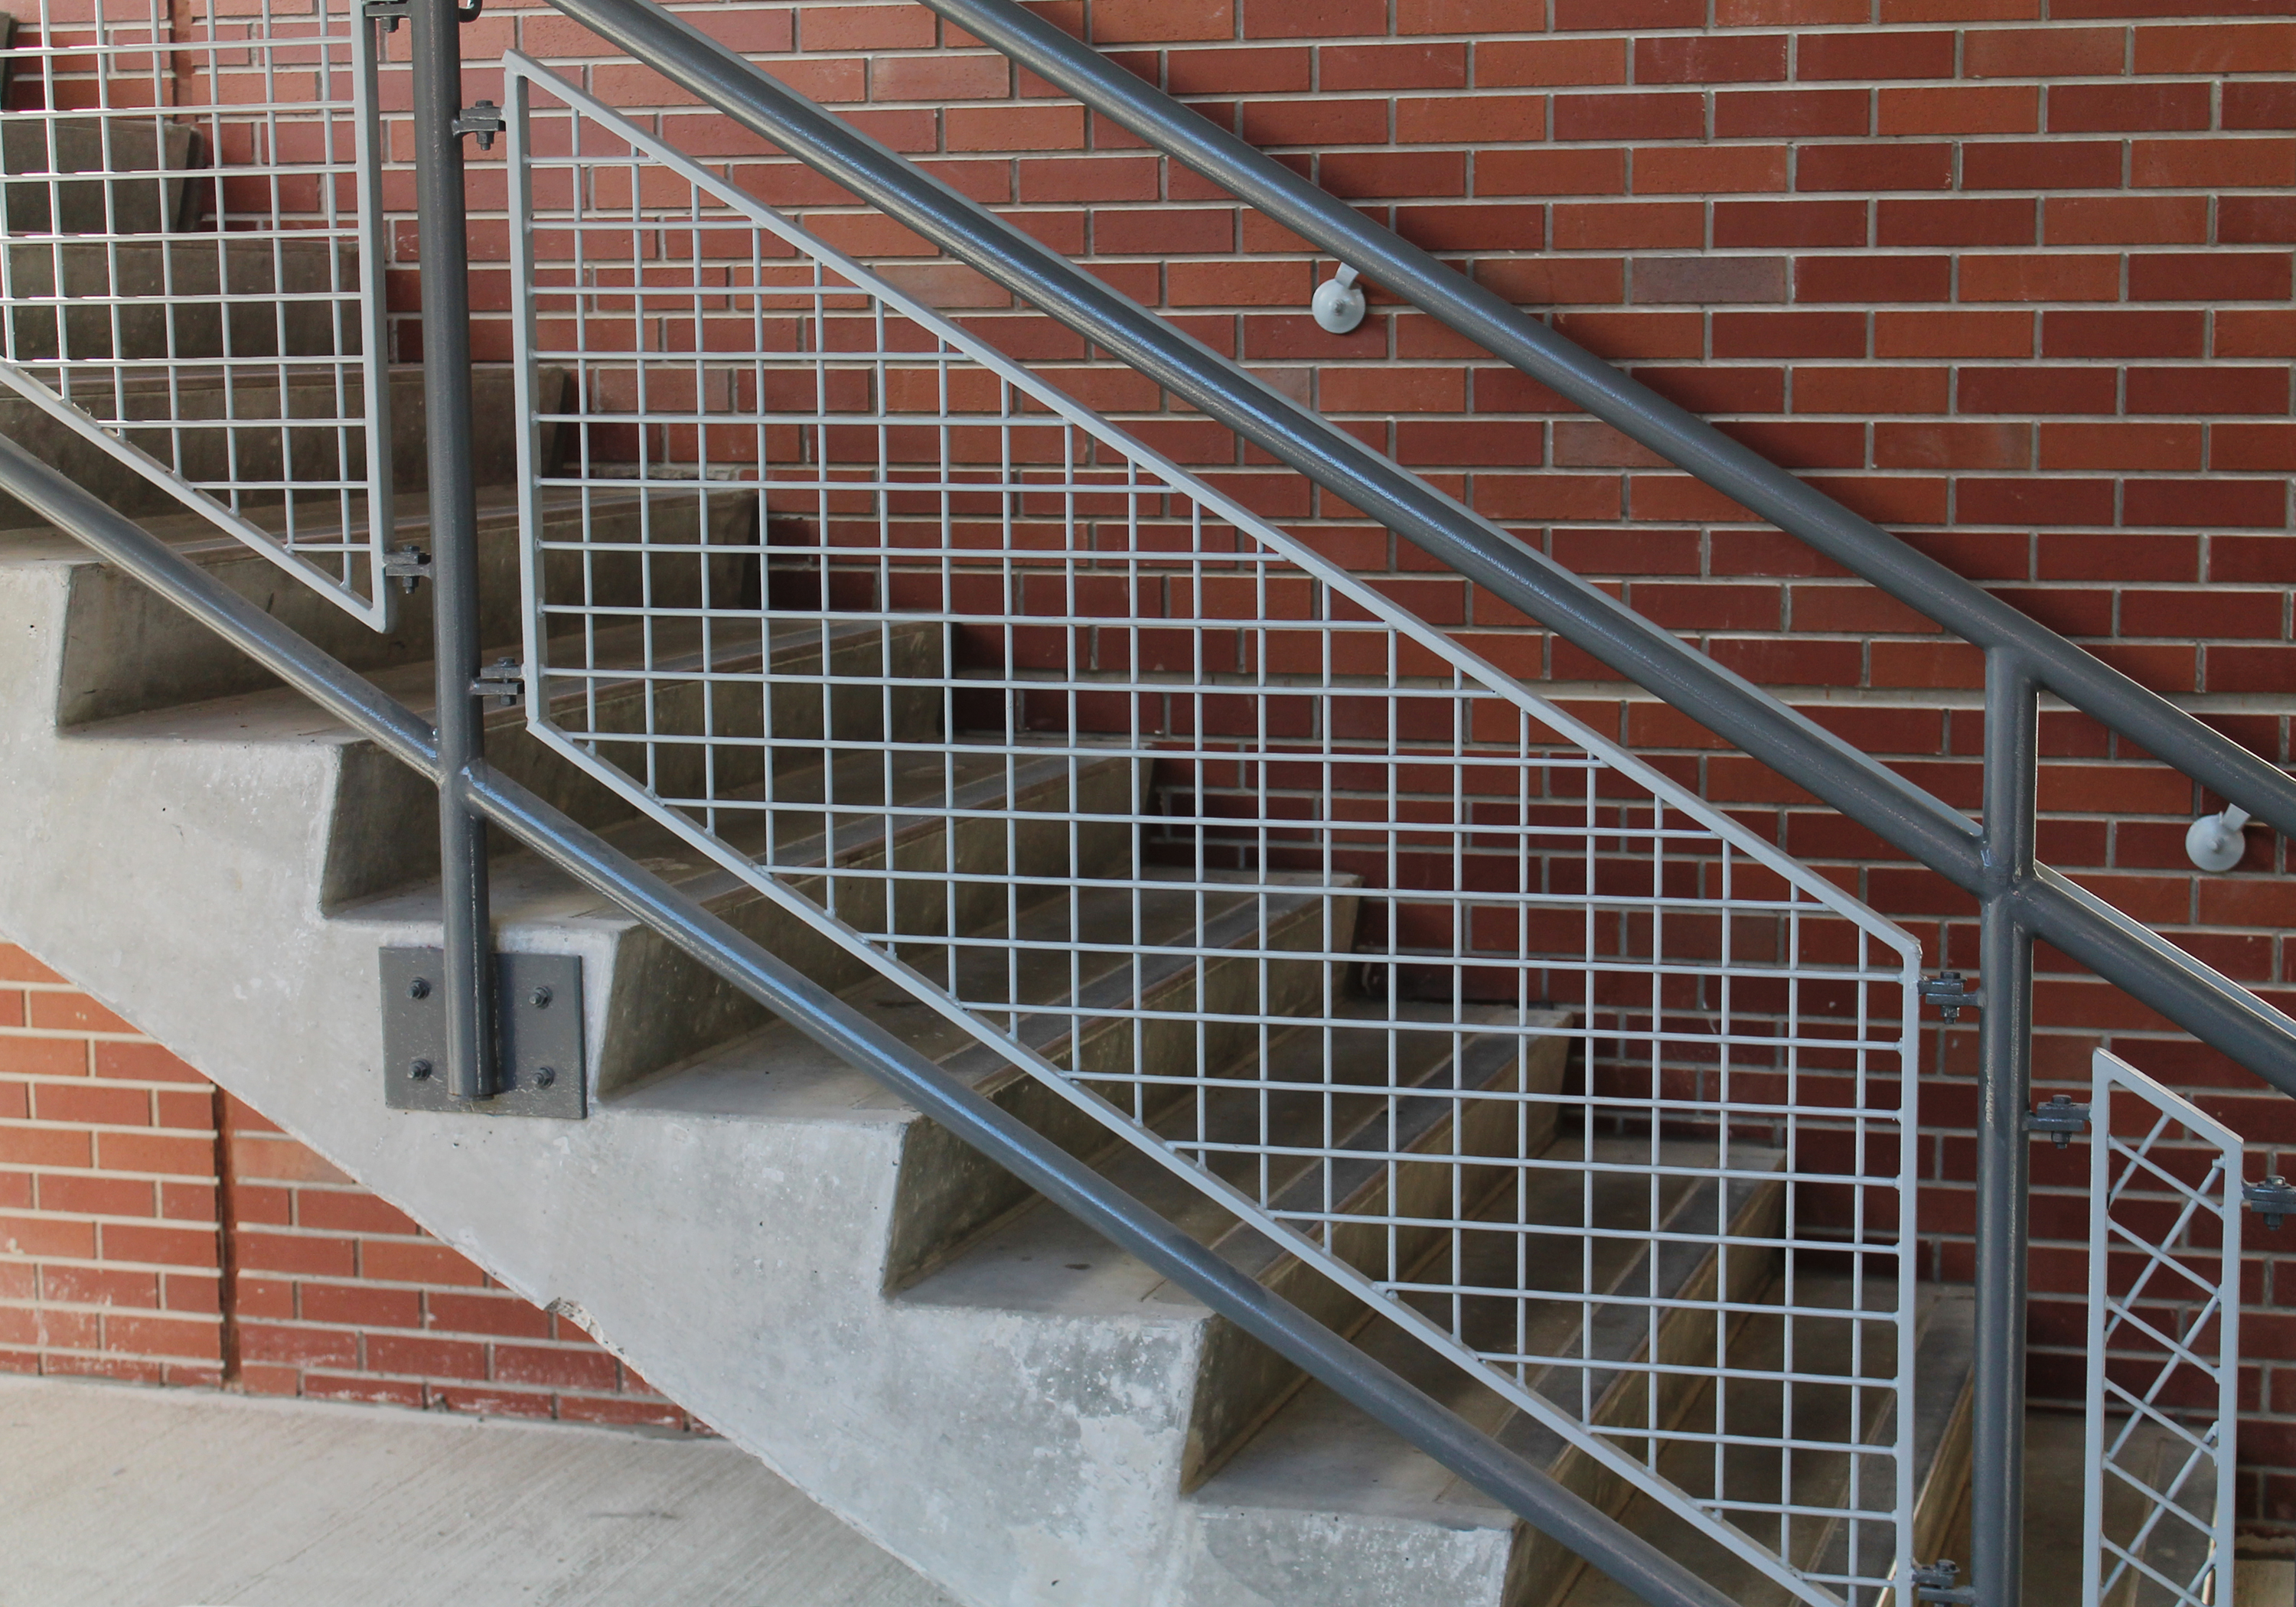 Mesh was used in railing infill panels, as well as in the facade and signage backgrounds.